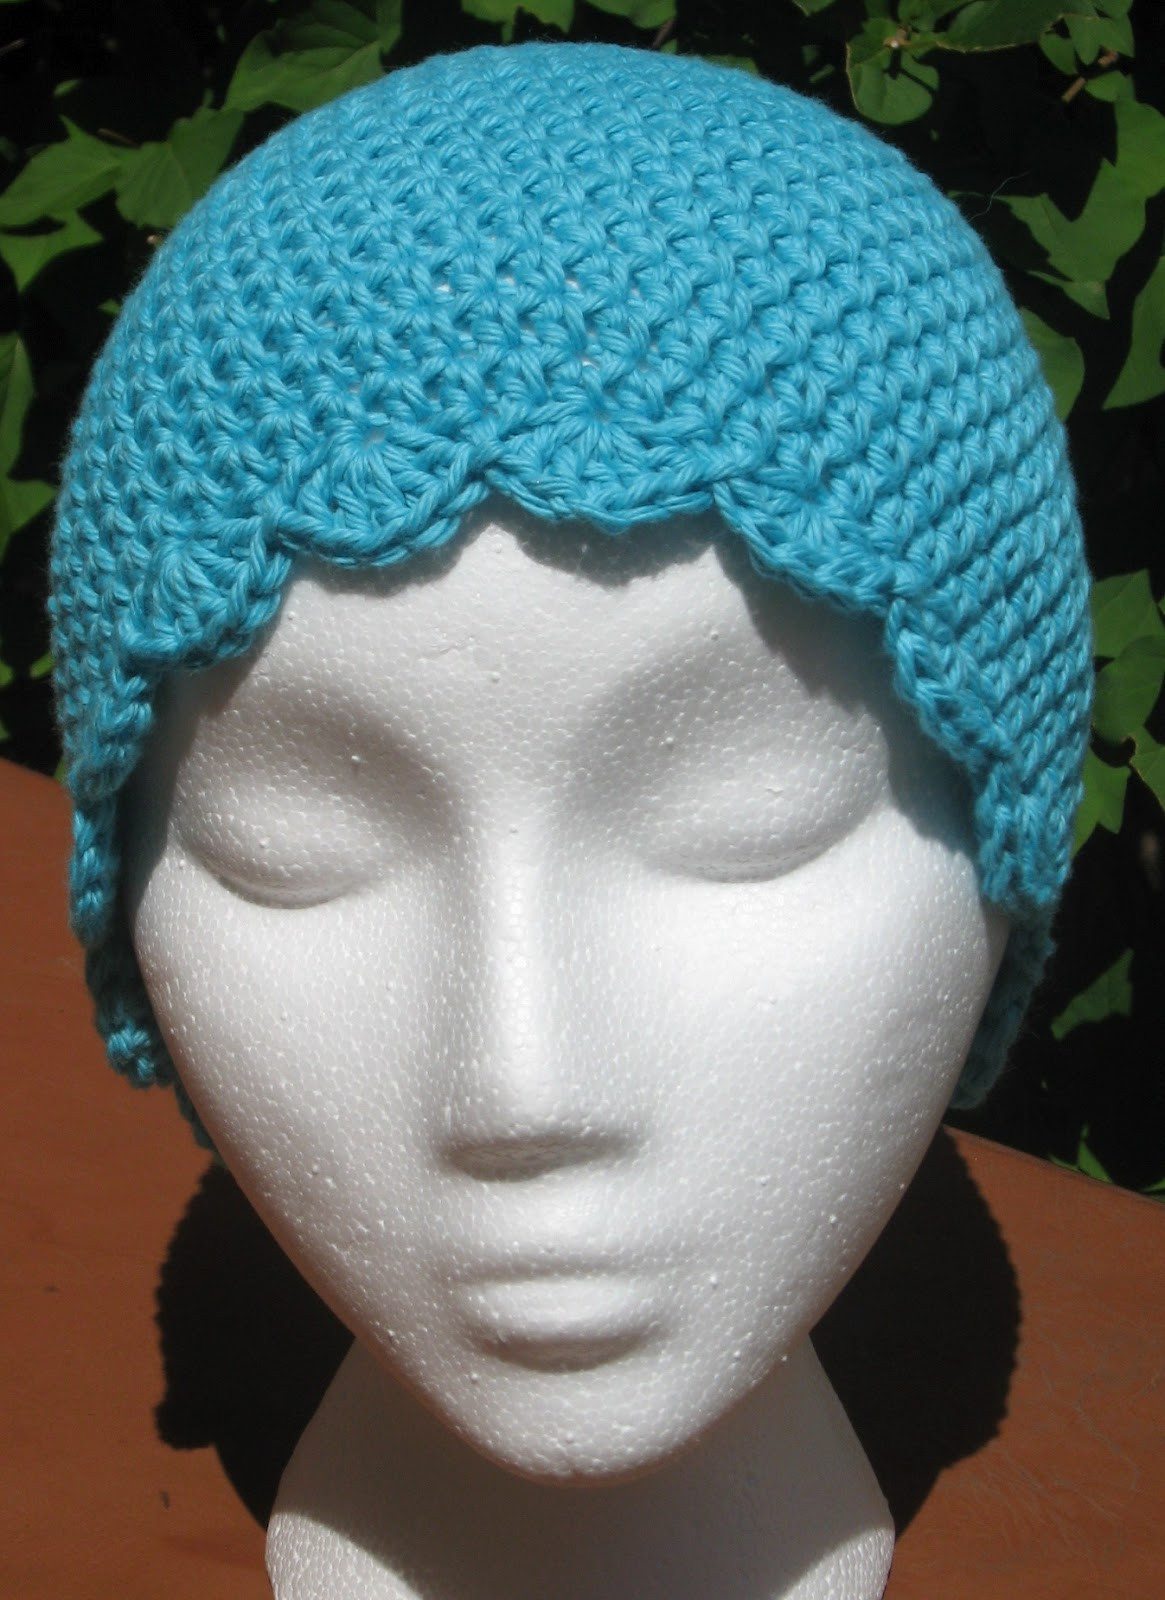 Inspirational Crochet Projects Crochet Chemo Sleep Cap Crochet Chemo Hats Patterns Of Marvelous 45 Ideas Crochet Chemo Hats Patterns